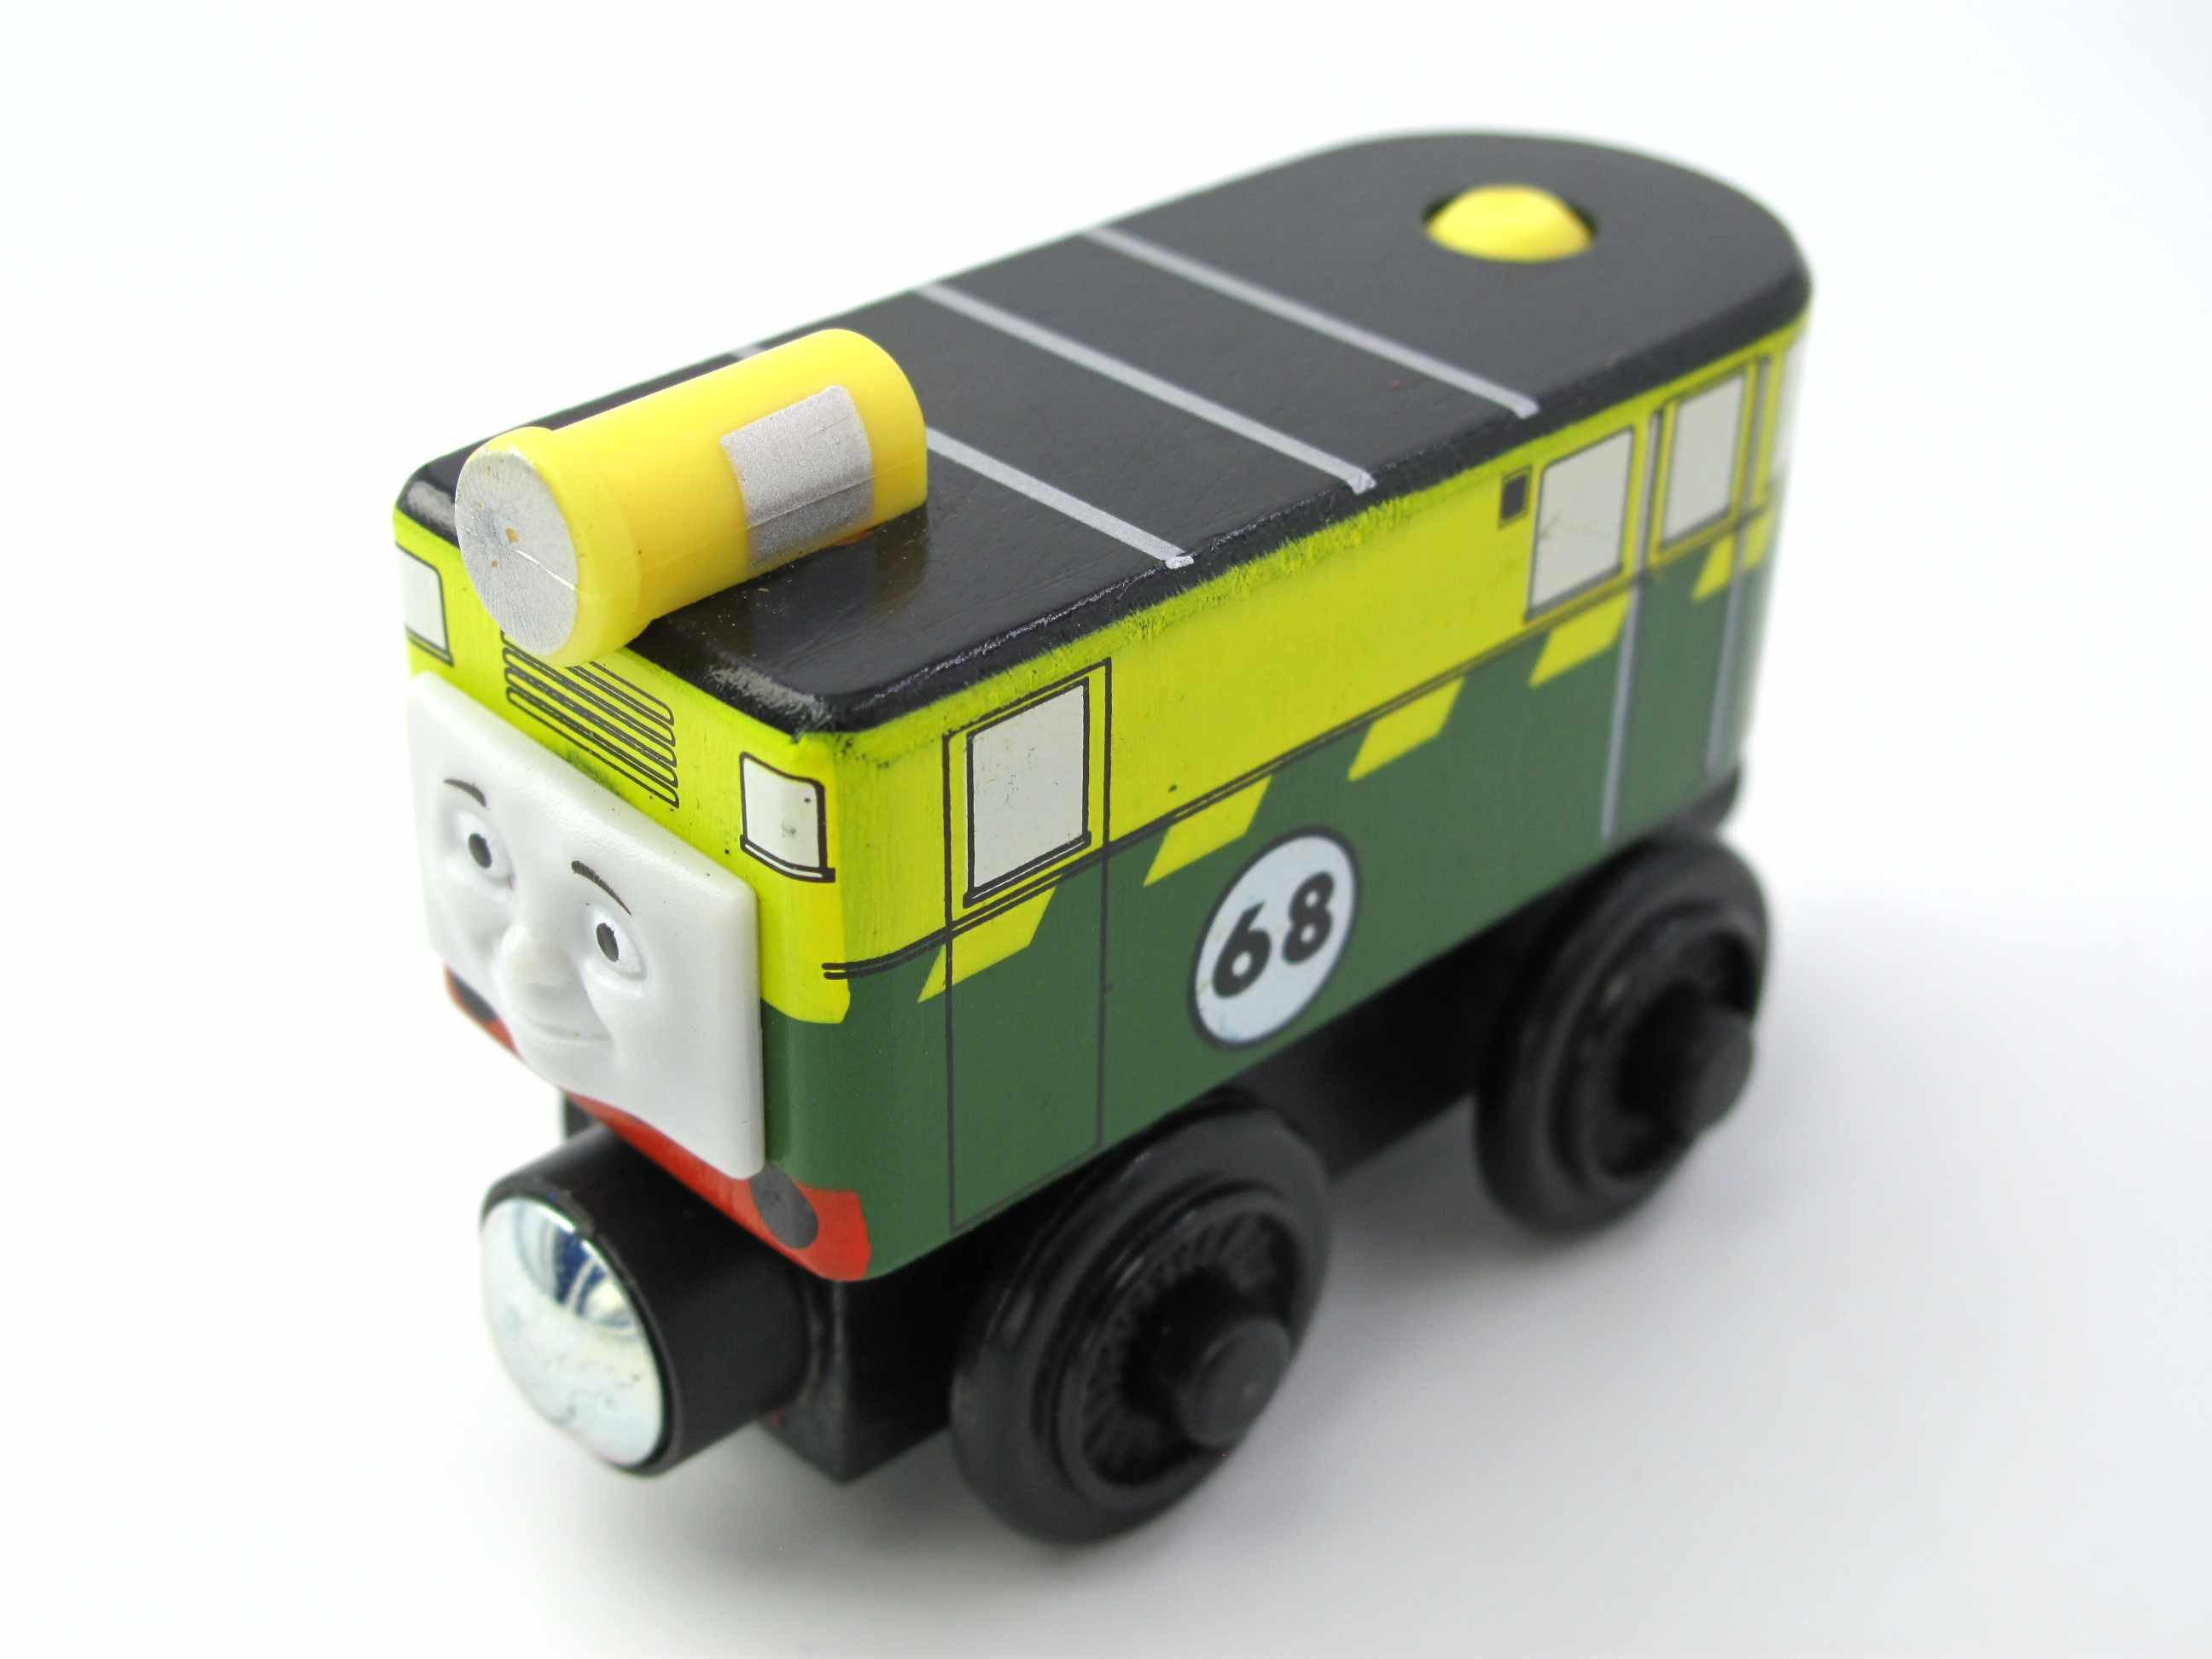 Wooden Train T001W PHILIP 68# Magnetic Truck Car Locomotive Engine Railway Toys for Children